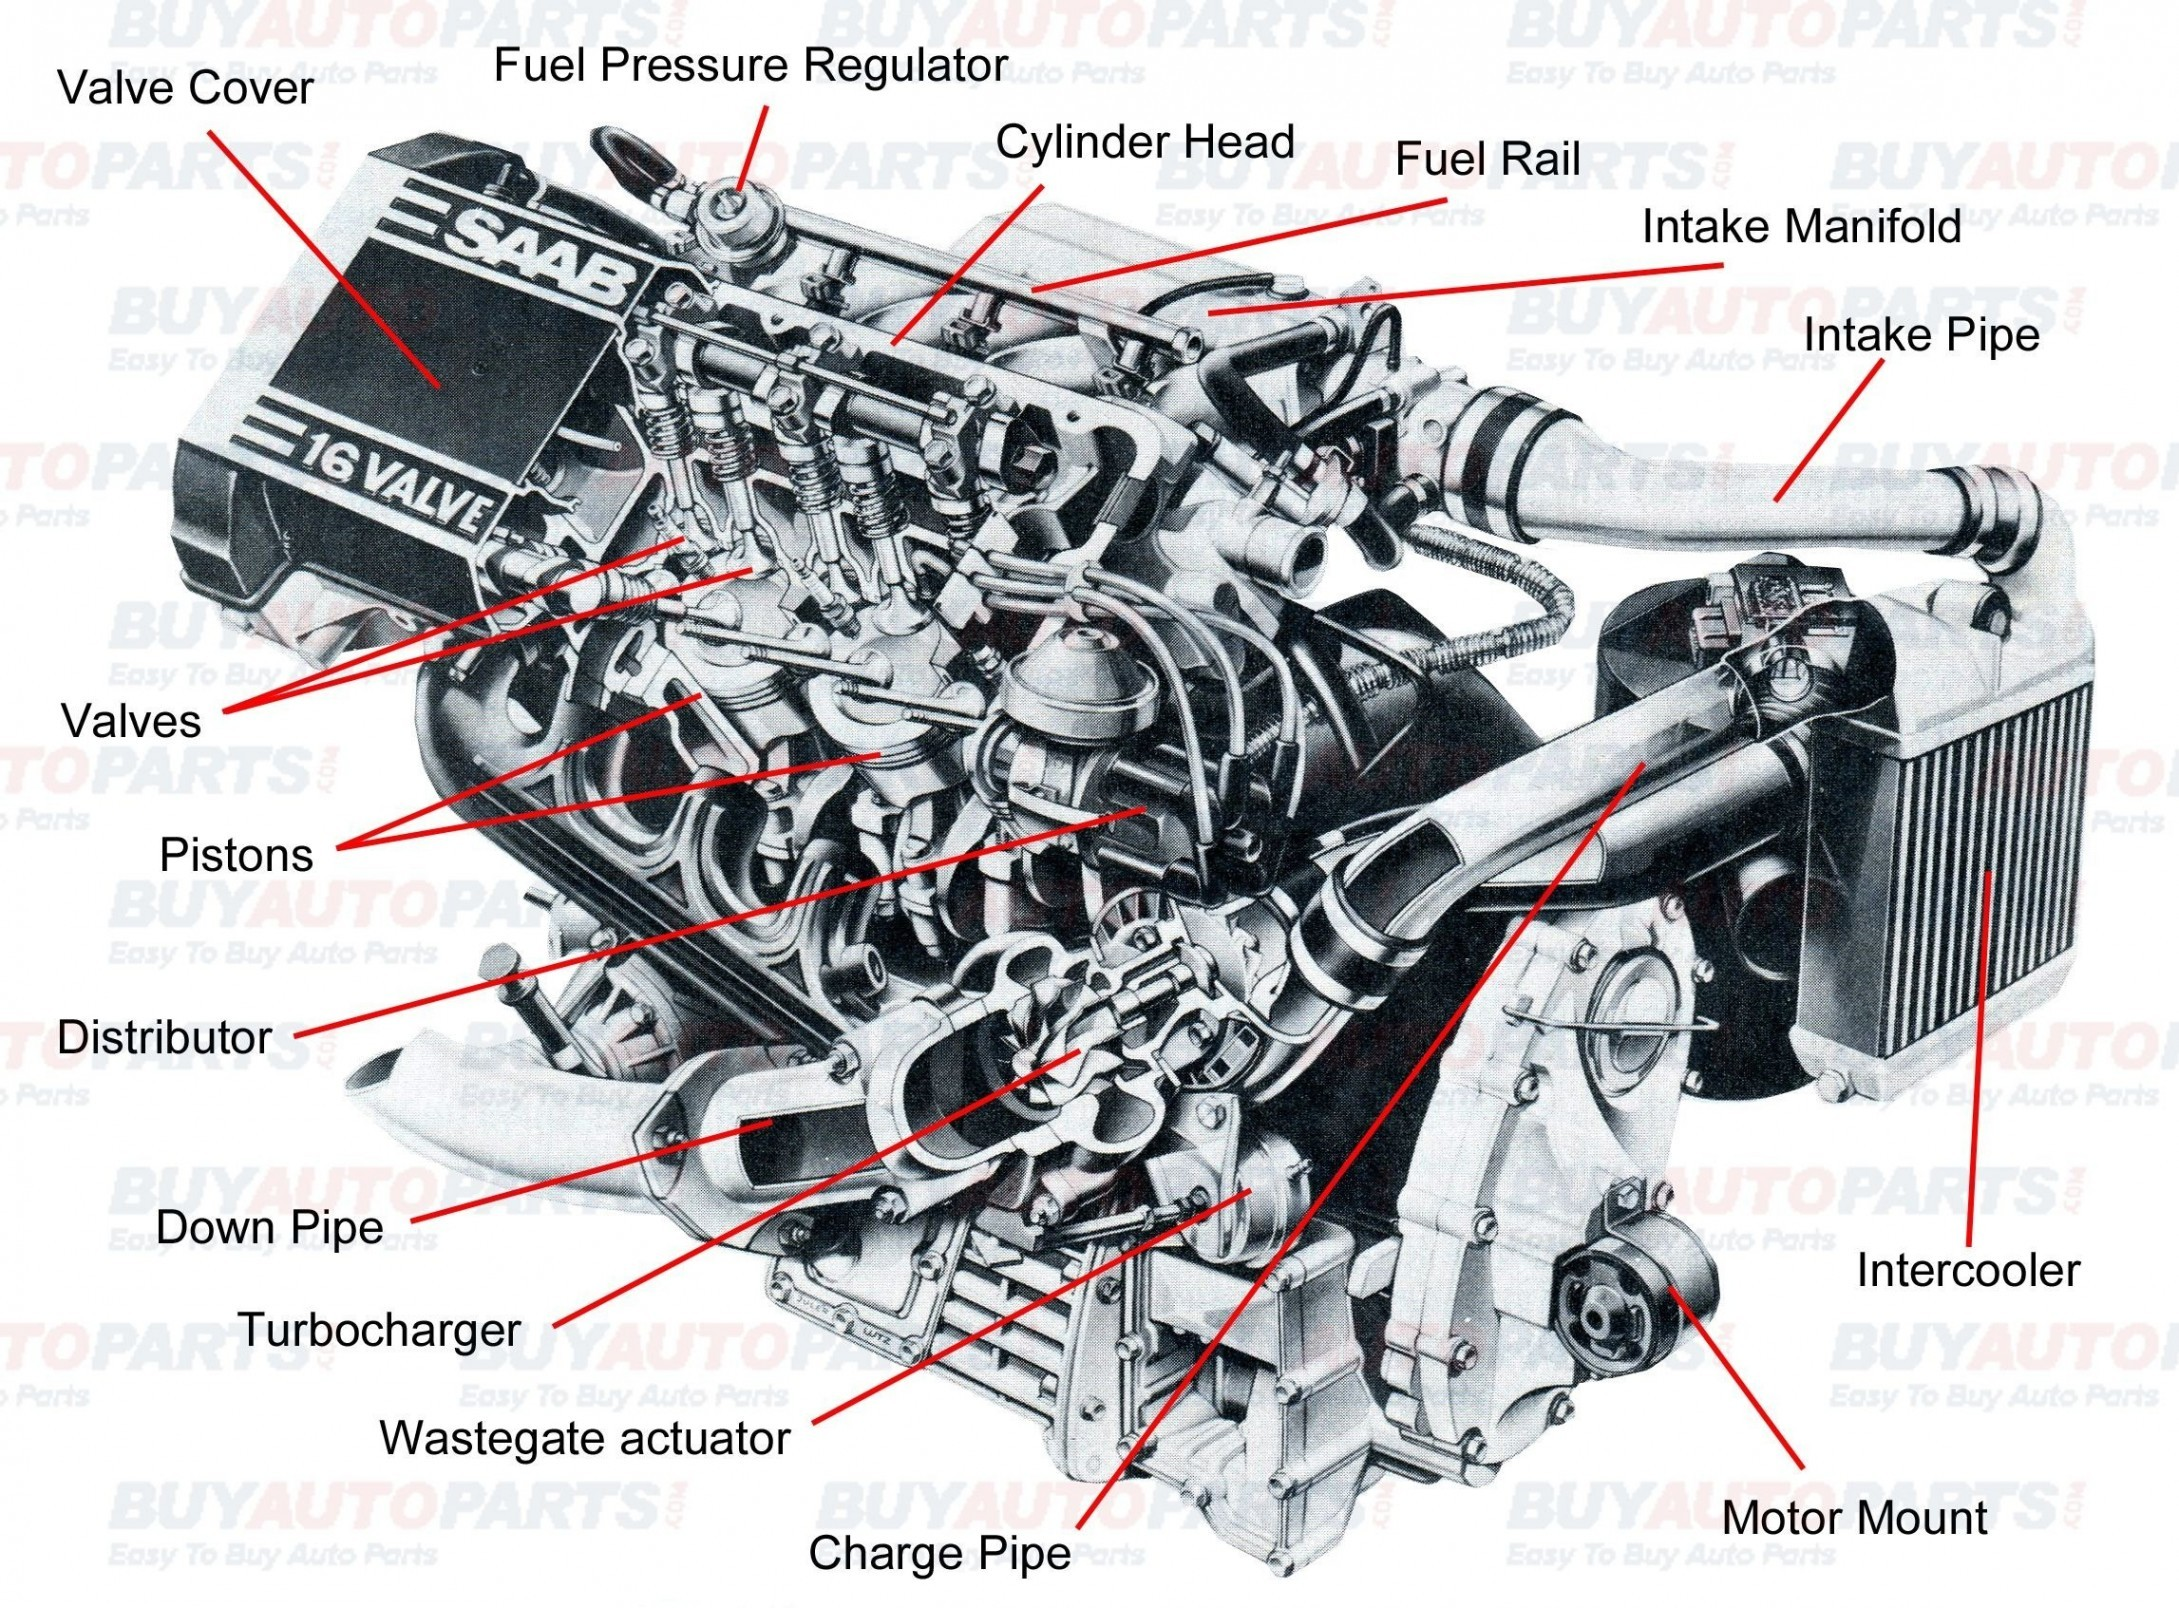 Auto Parts Diagram toyota Car Engine Diagram – Car Diagram Unique Car Parts and Diagrams Of Auto Parts Diagram toyota Auto Transmission Diagram toyota Parts Catalog Beautiful Chevrolet